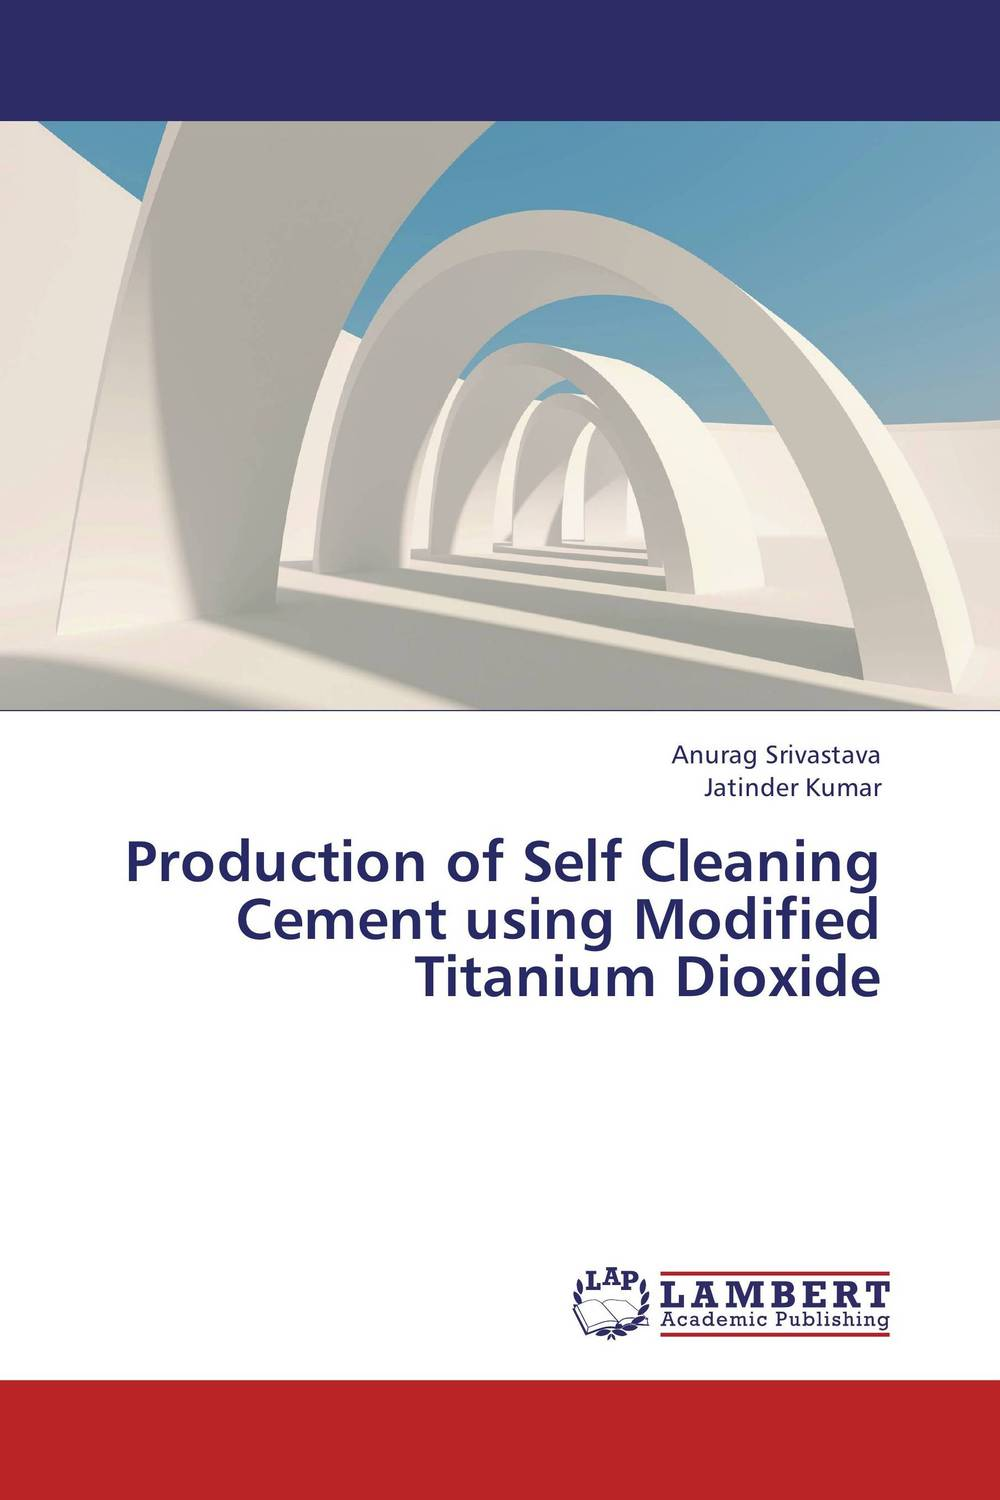 Production of Self Cleaning Cement using Modified Titanium Dioxide adding value to the citrus pulp by enzyme biotechnology production